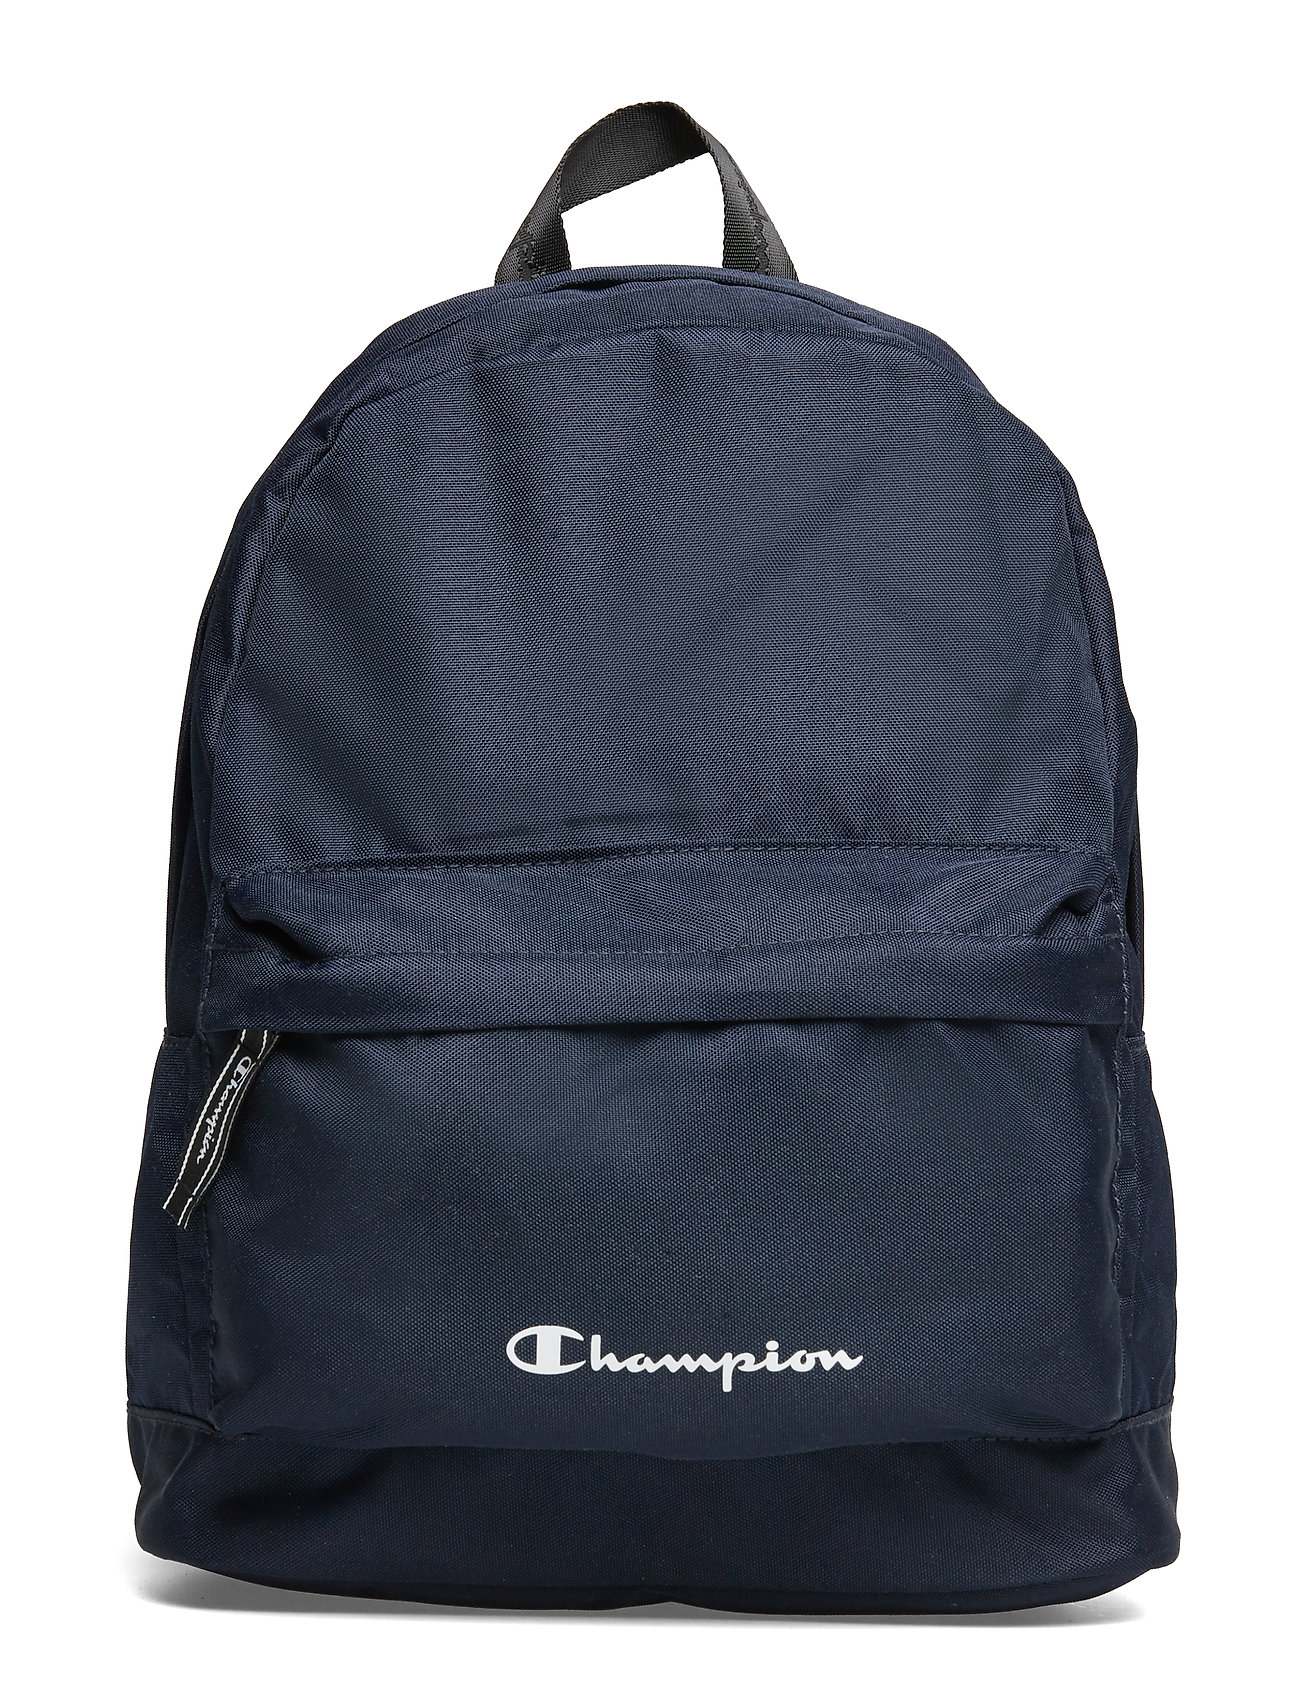 Champion Backpack - SKY CAPTAIN